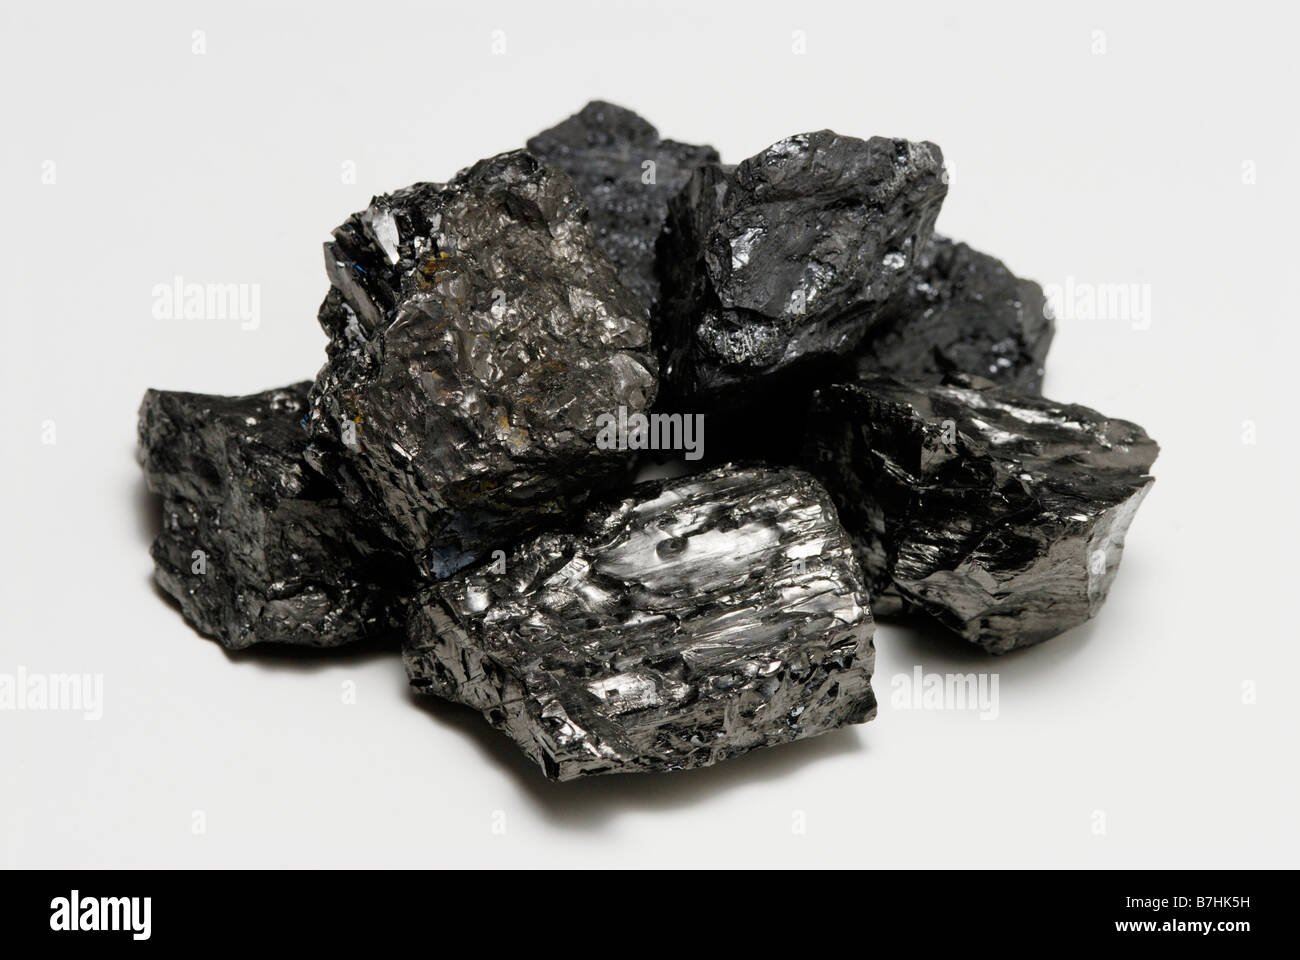 Pile of anthracite coal - Stock Image